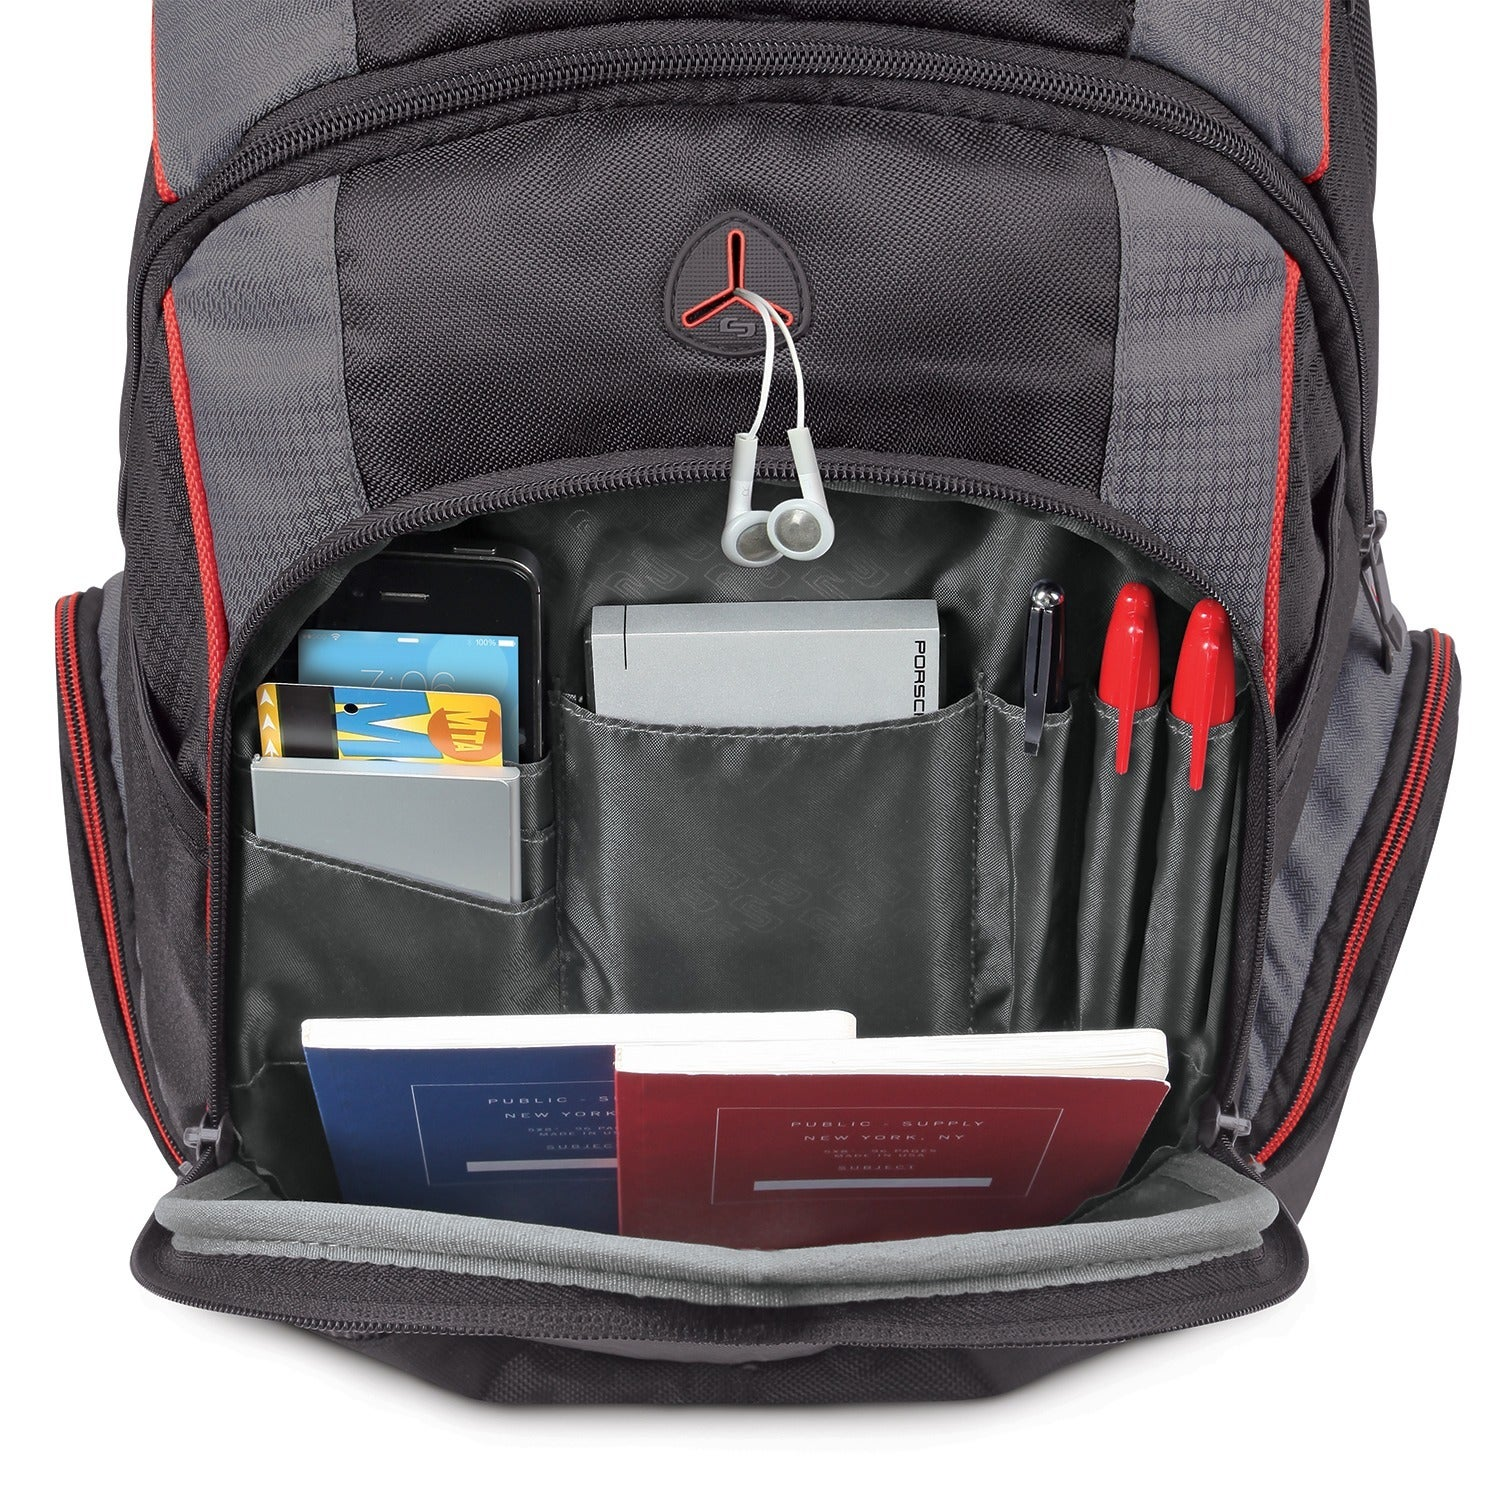 2691965e8d17 Solo ACV711-4 17.3-inch Laptop Black Hardshell Backpack with Front Zippered  Pocket